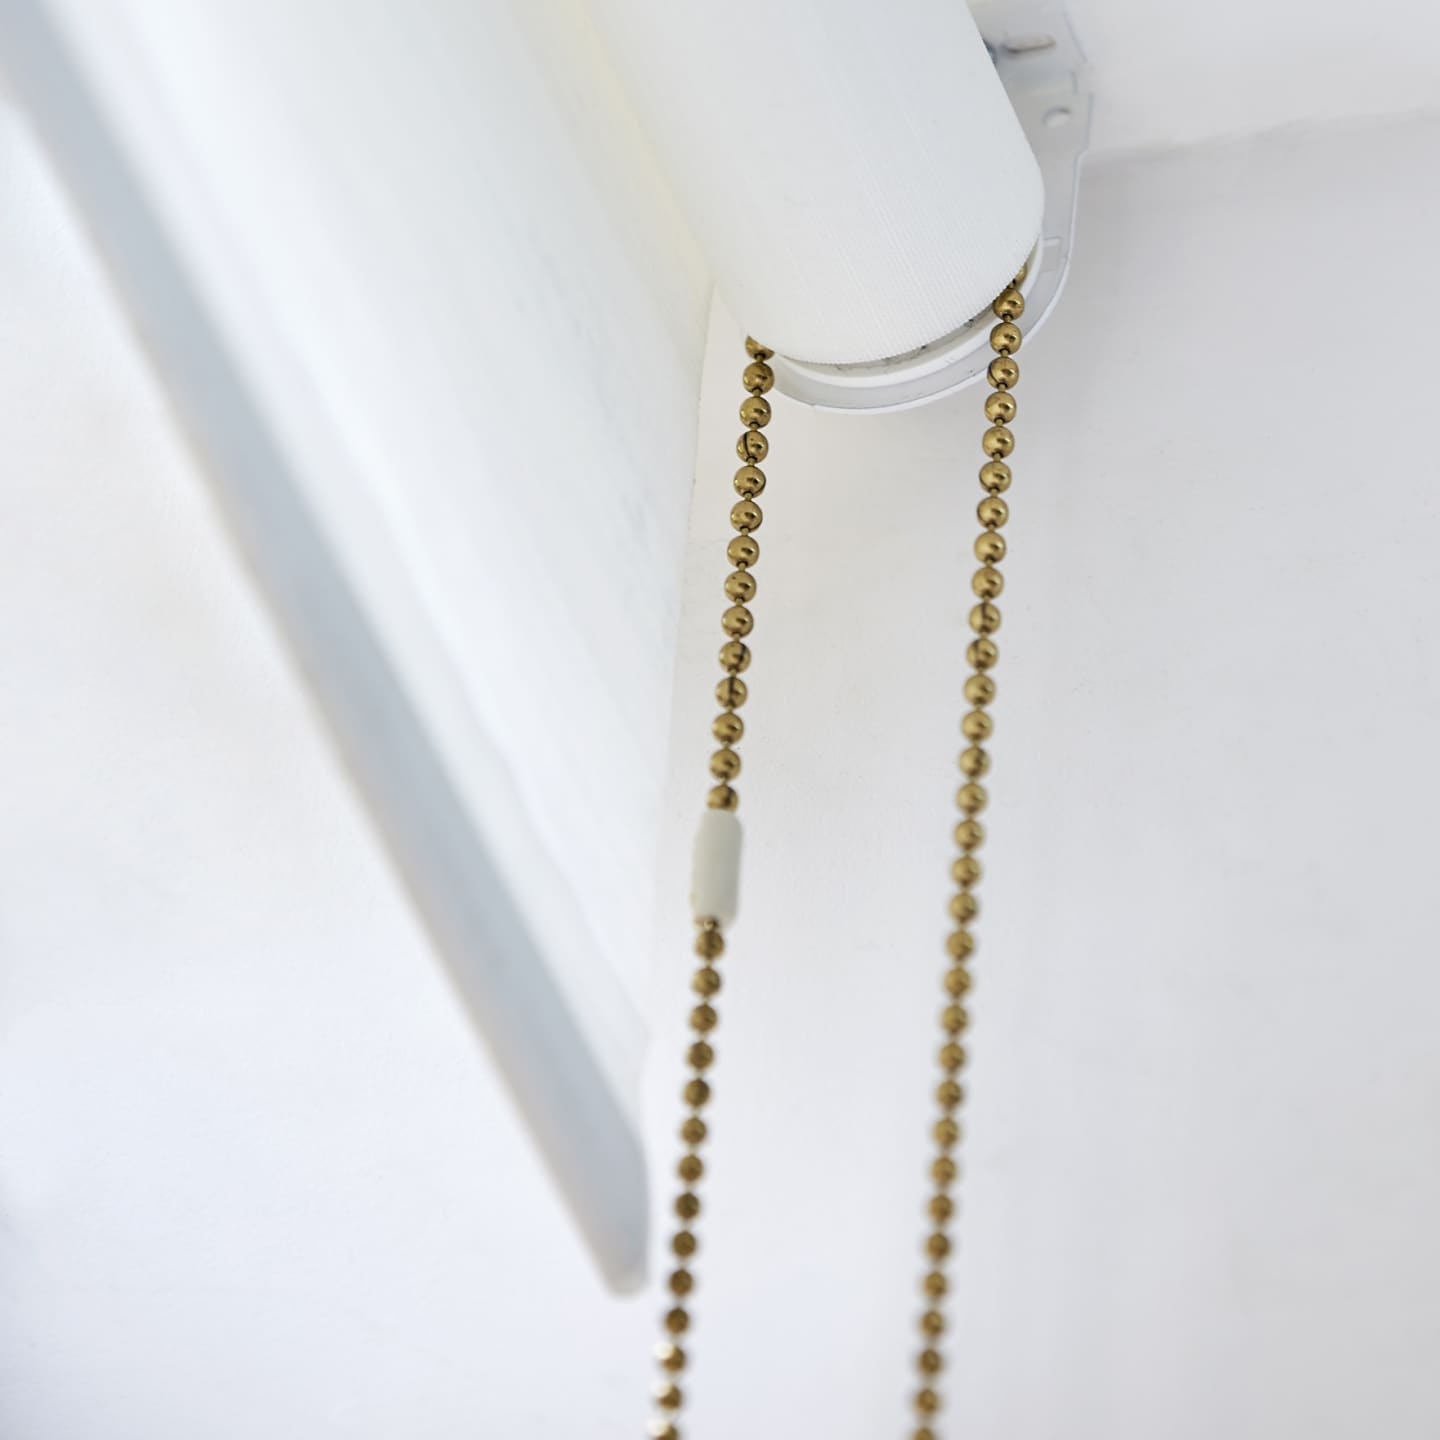 White roller blinds golden chain close up